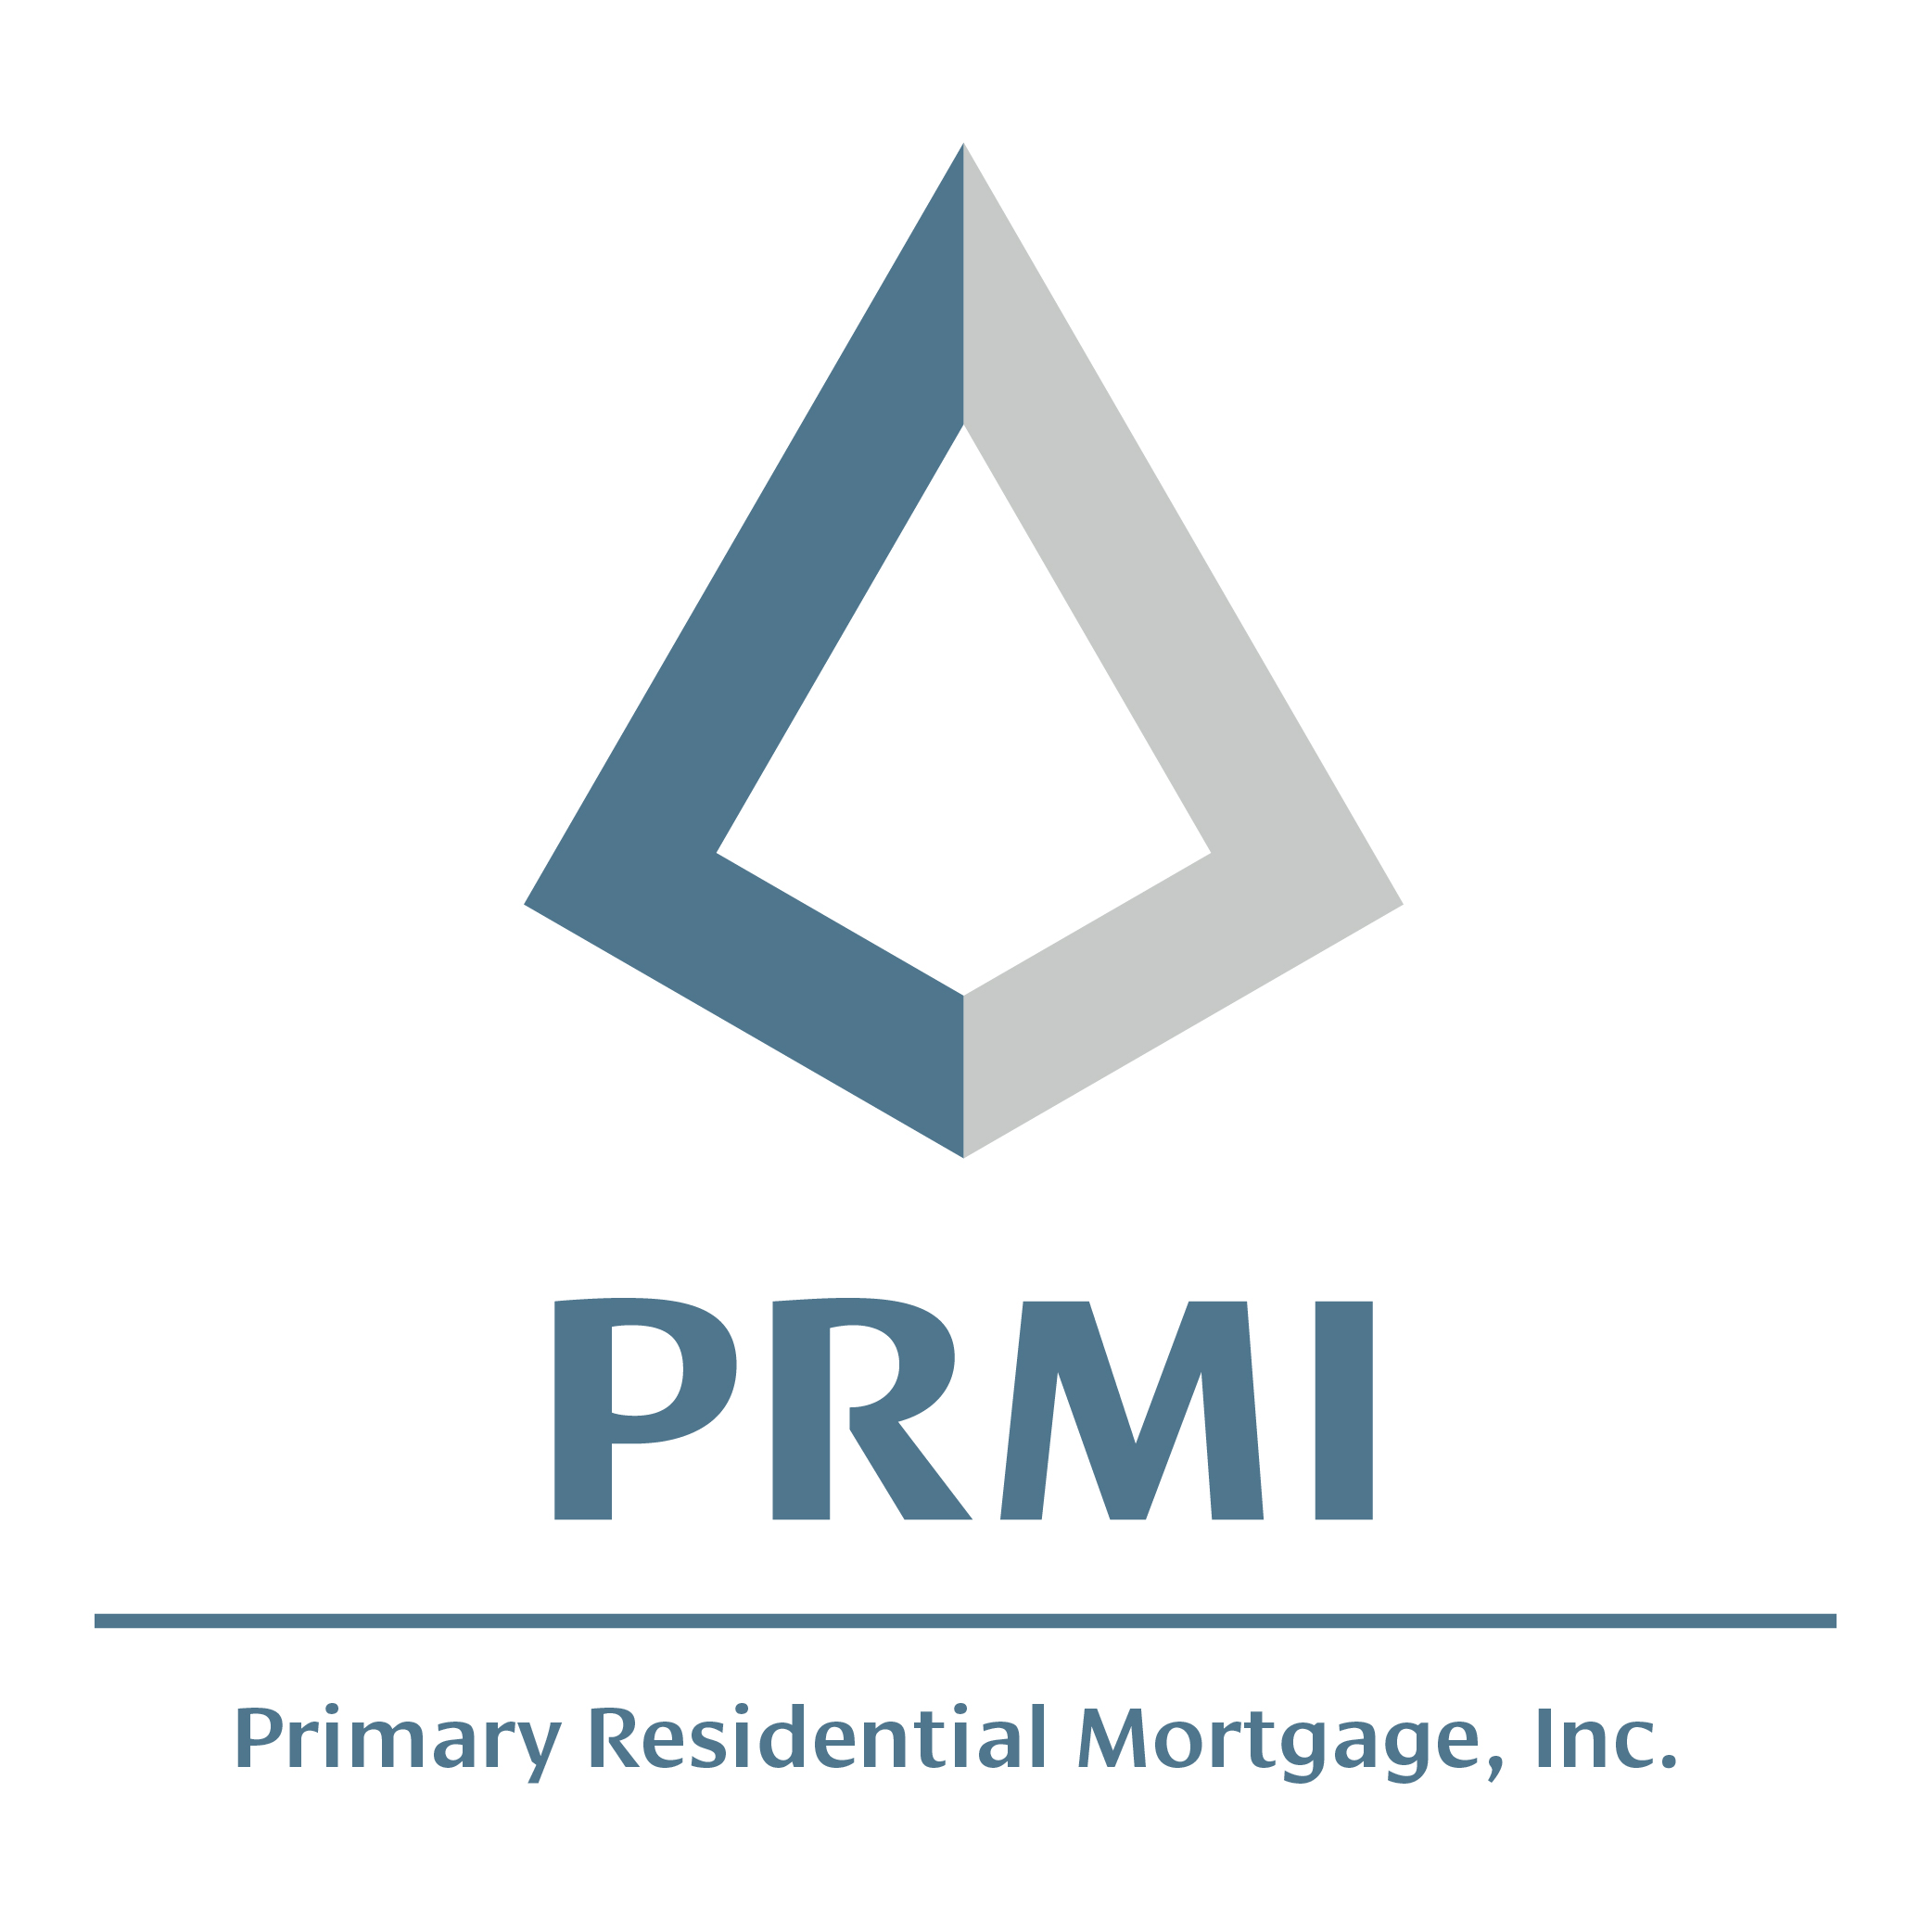 Primary Residential Mortgage, Inc. - Dover, NH 03820 - (603)742-3331   ShowMeLocal.com